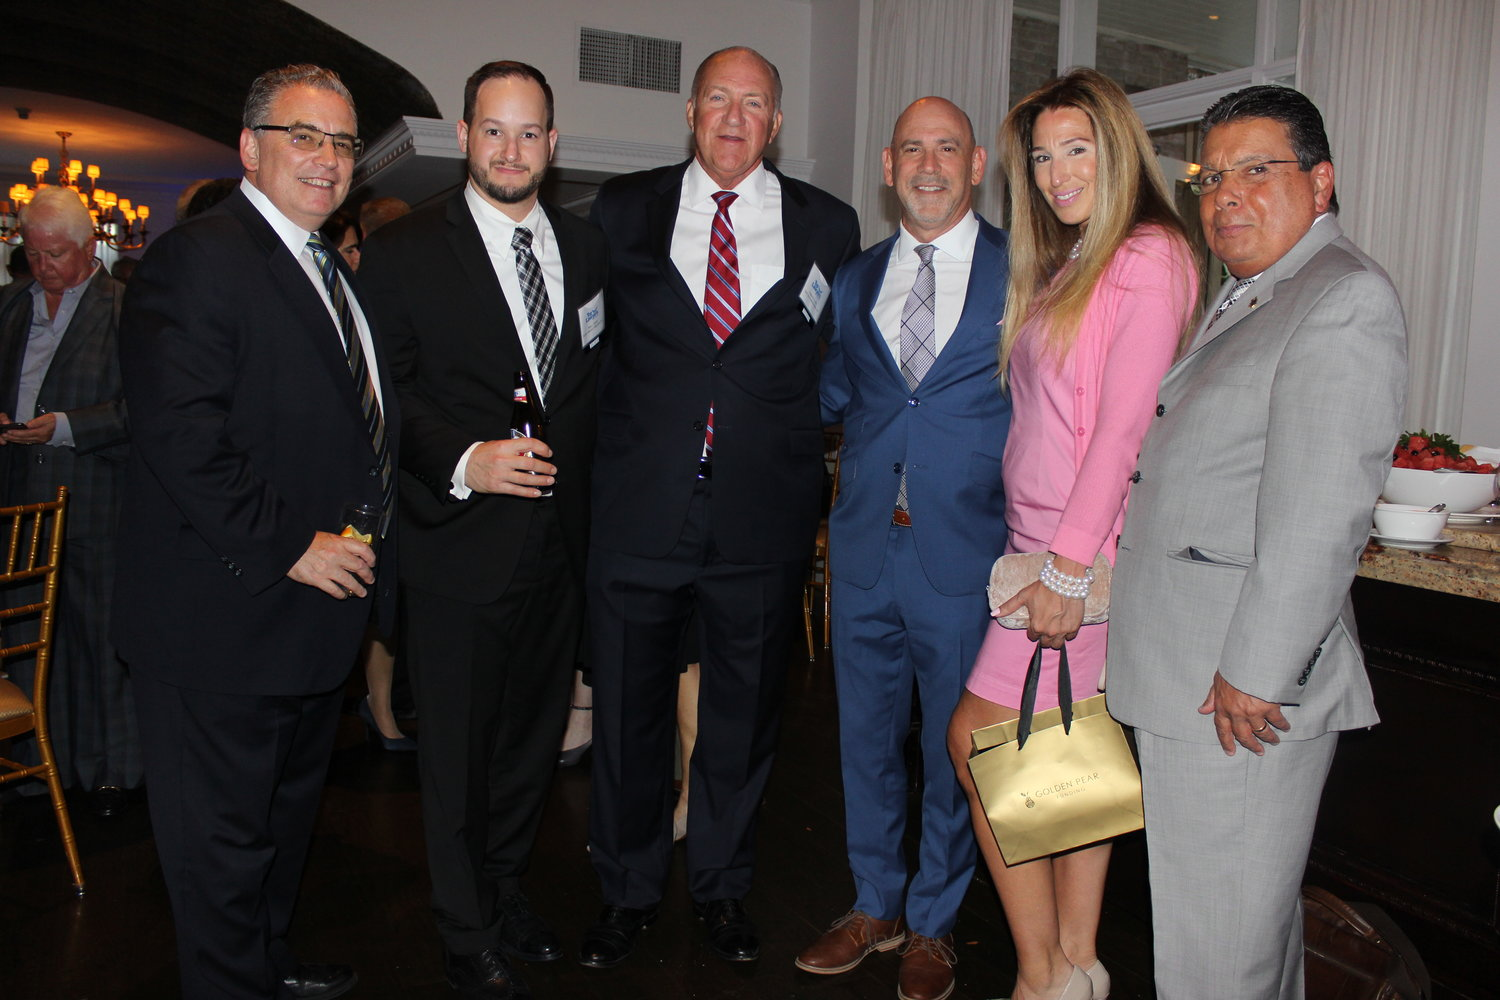 Mingling at the networking and cocktail party were, from left, Brett Harrison, Honoree Ross Kartez, Honoree Frederick Johs, Honoree Jeffrey Kimmel, Connie Henriquez and Frank Torres.